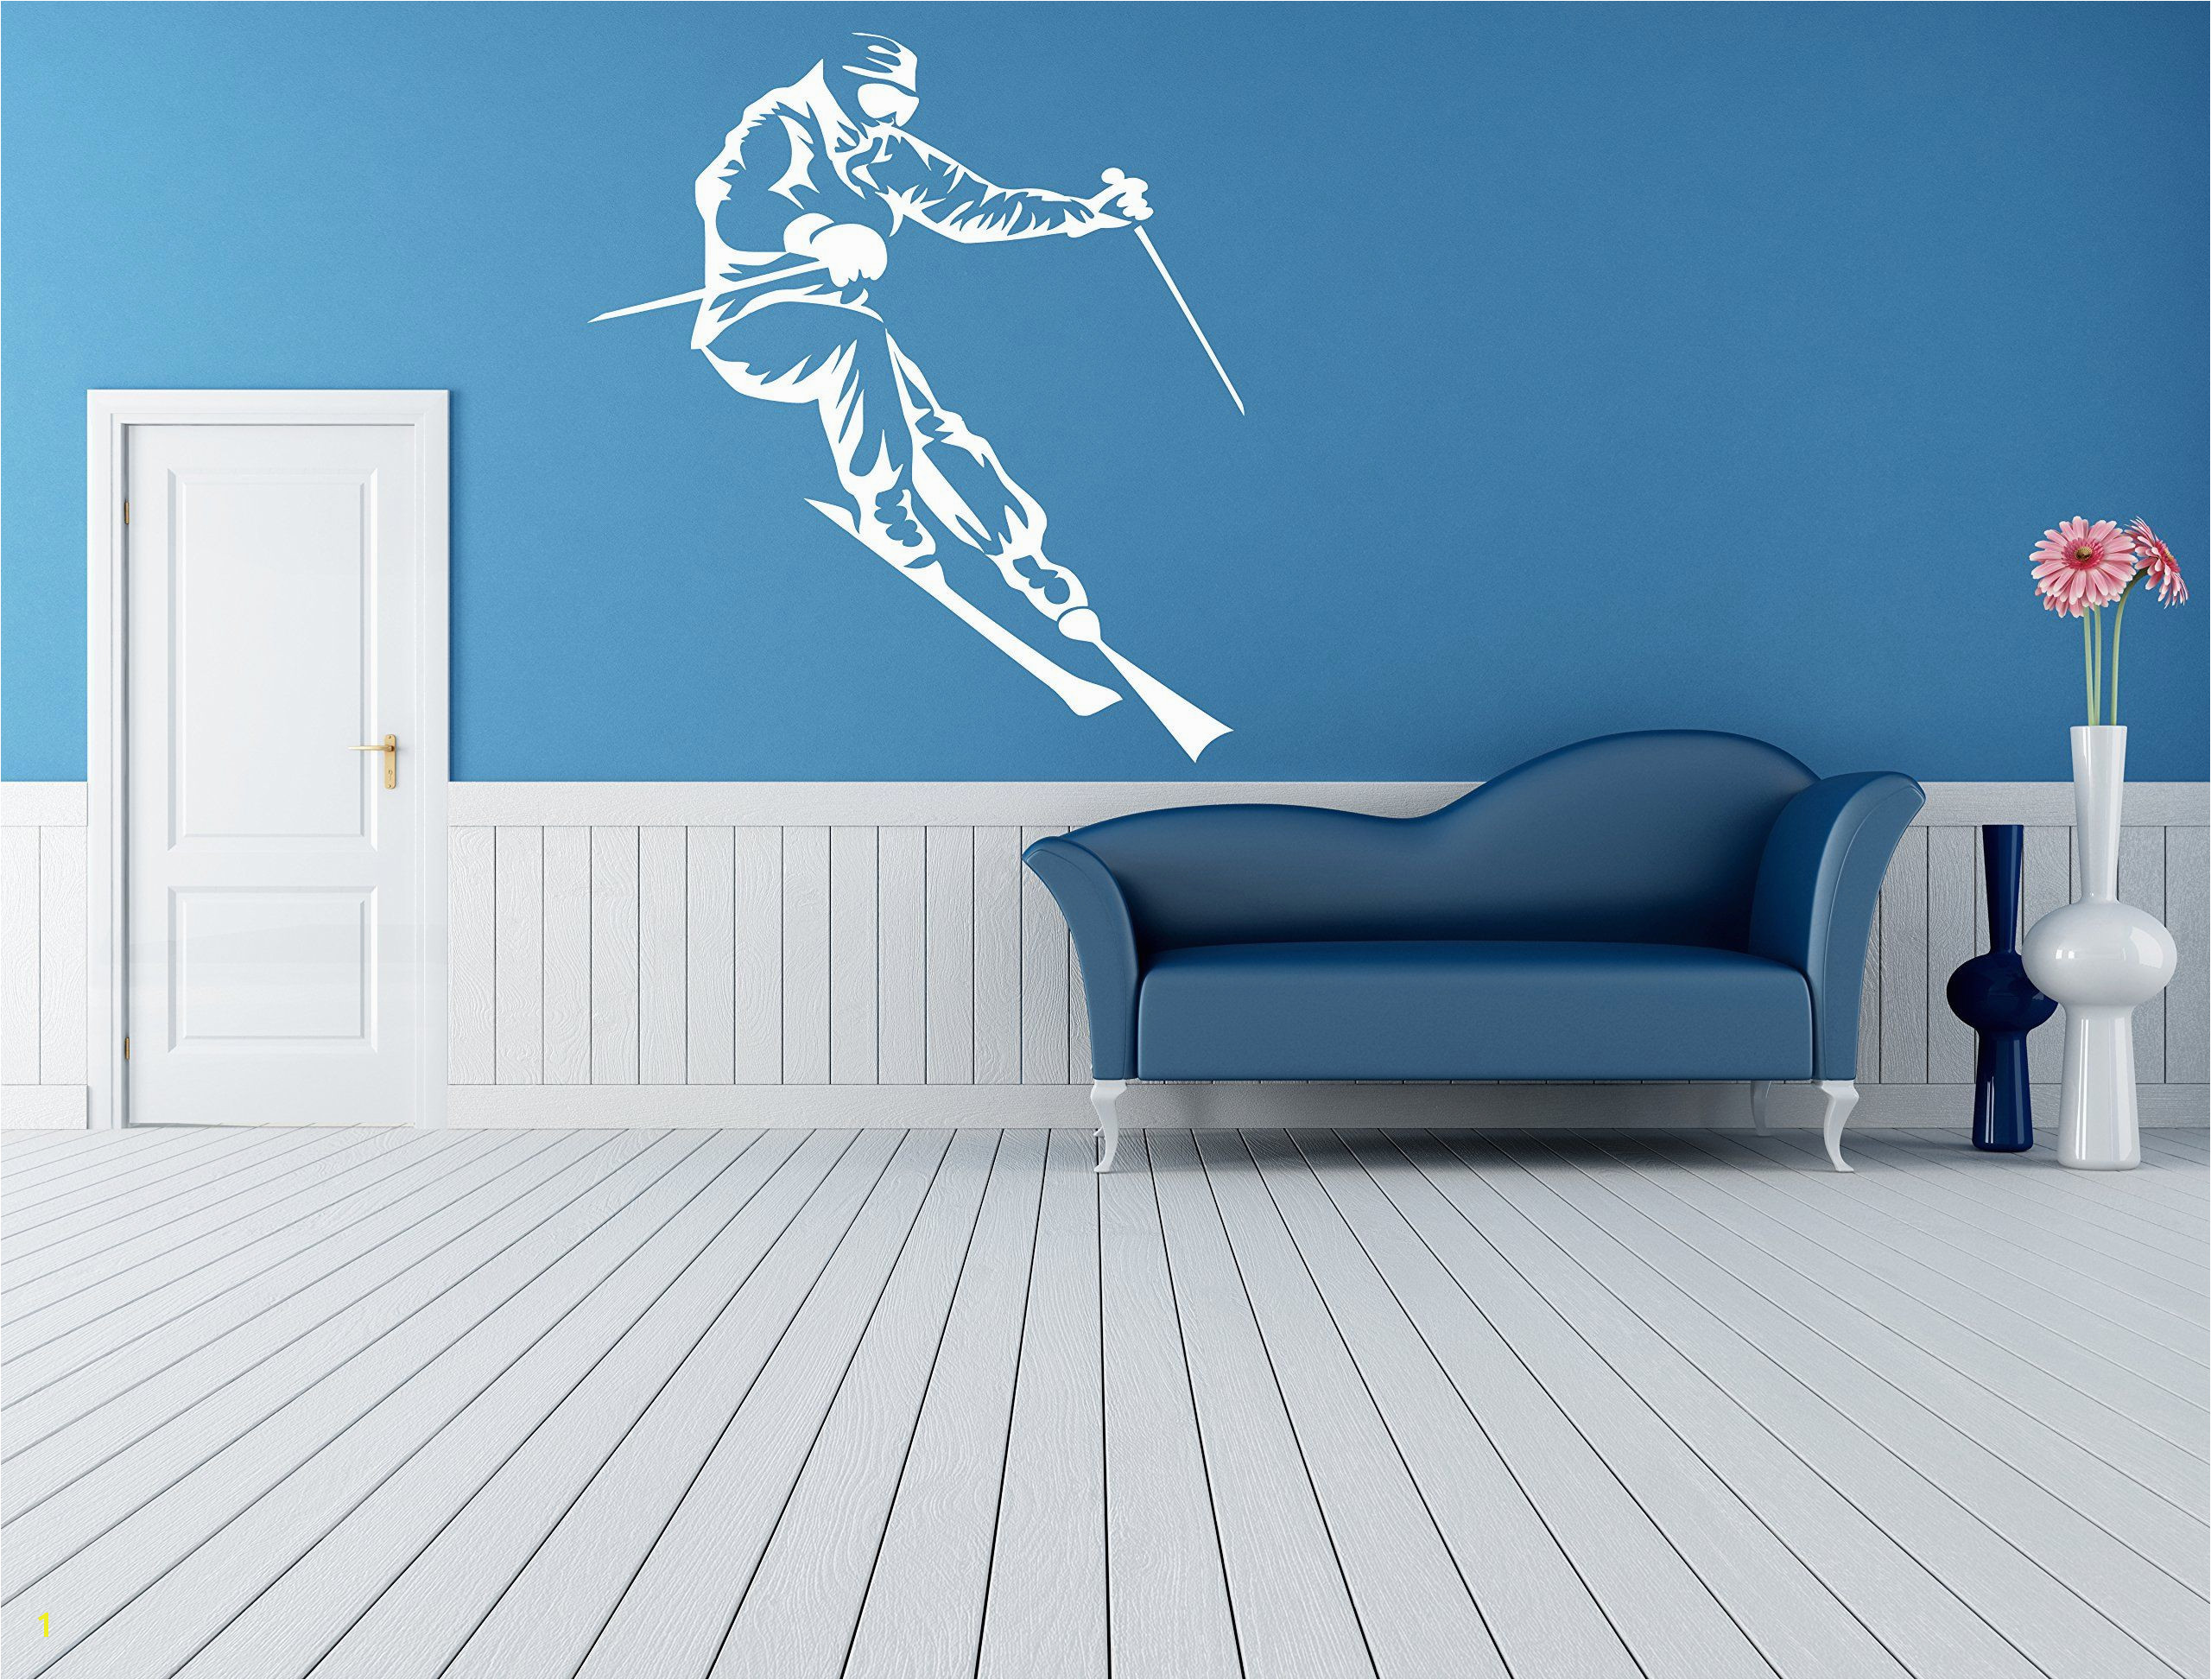 Snowboard Wall Mural Wall Room Decor Art Vinyl Sticker Mural Decal Ski Snowboard Slop Big